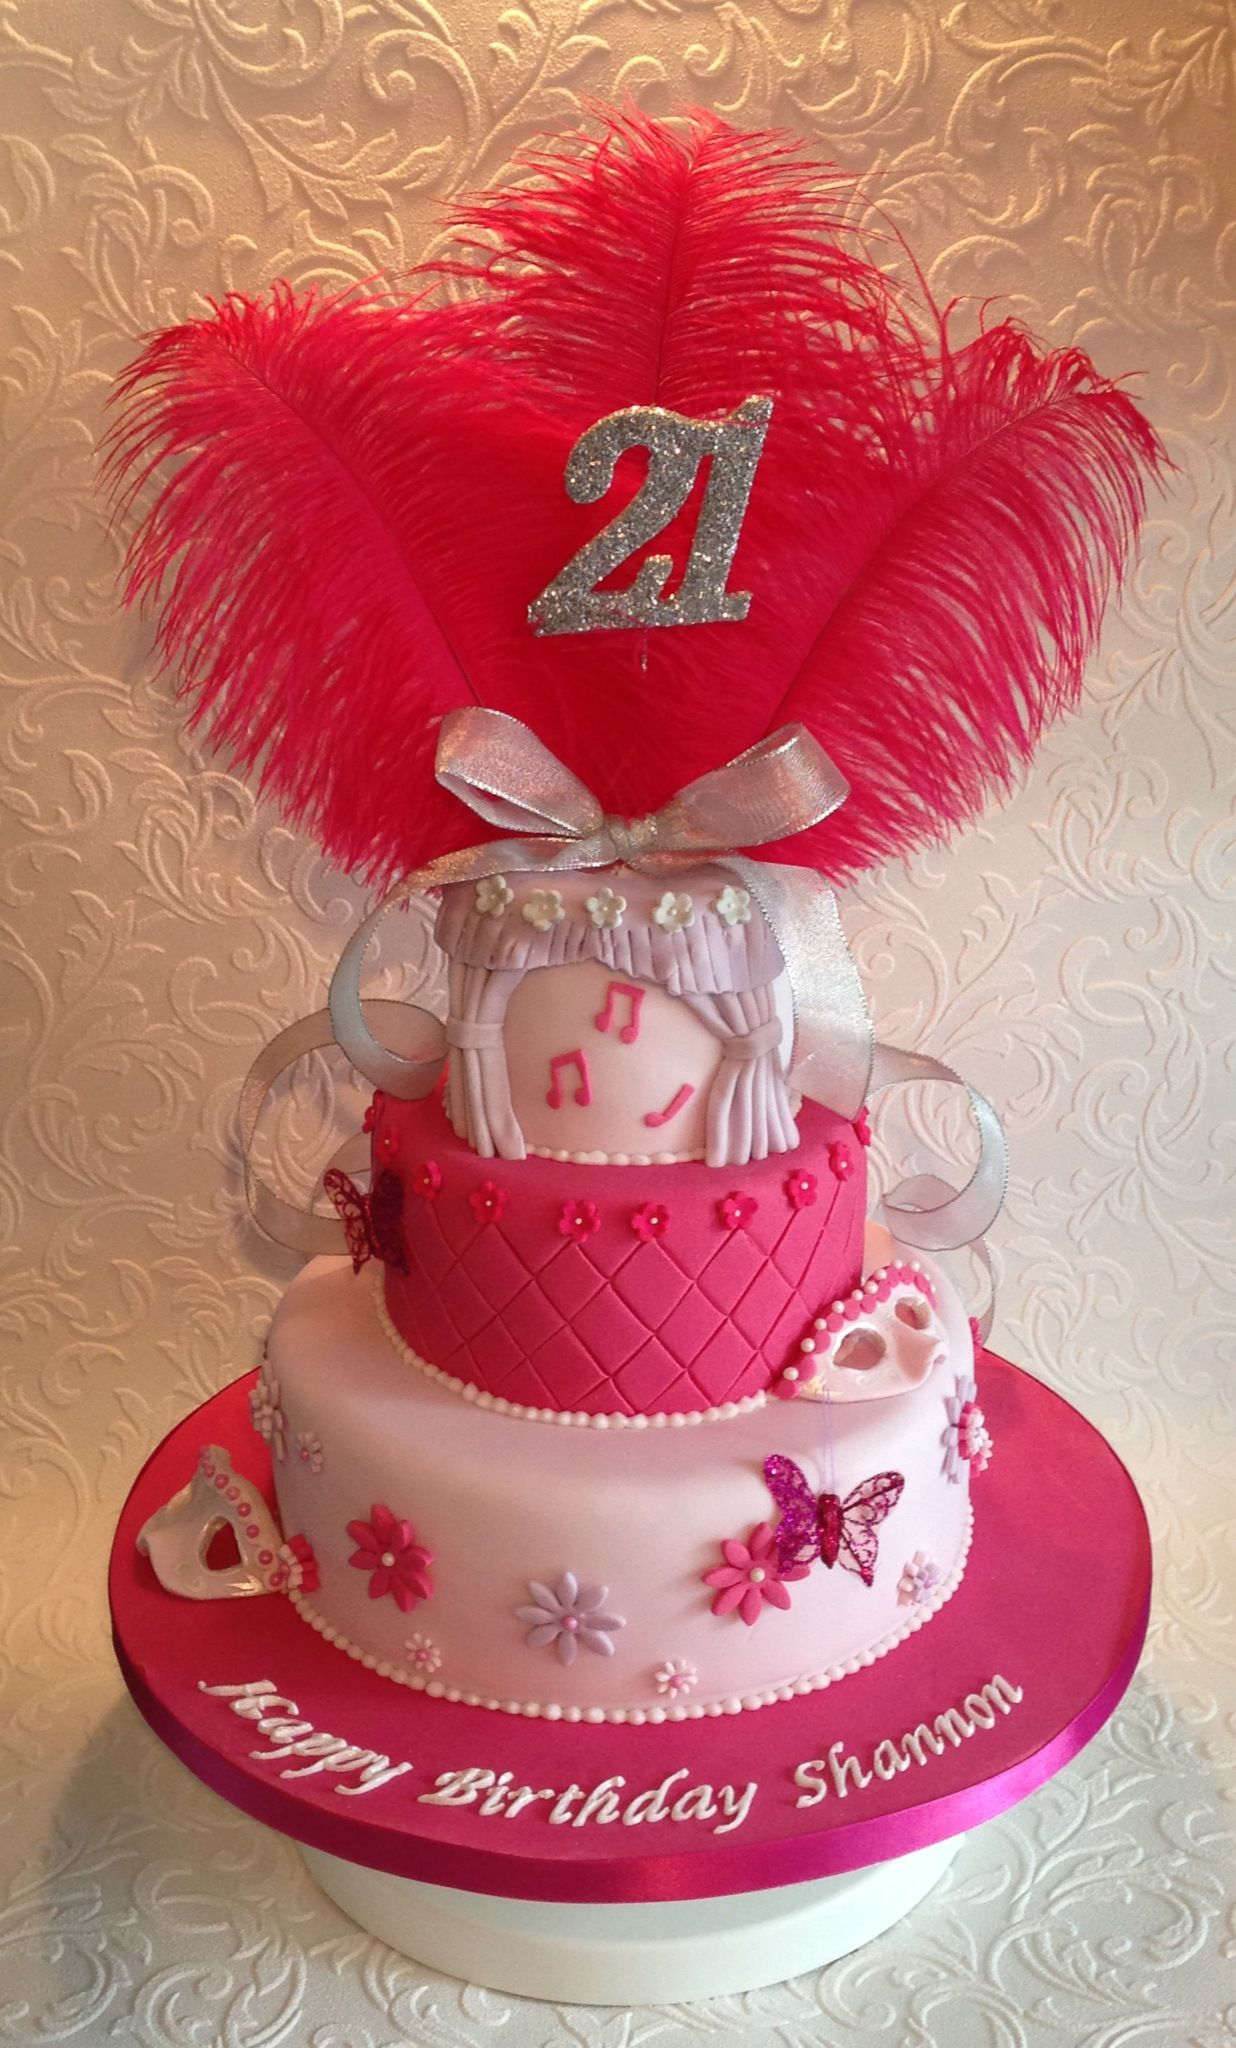 This 3tiered pink and sparkly spectacular cake was made for a